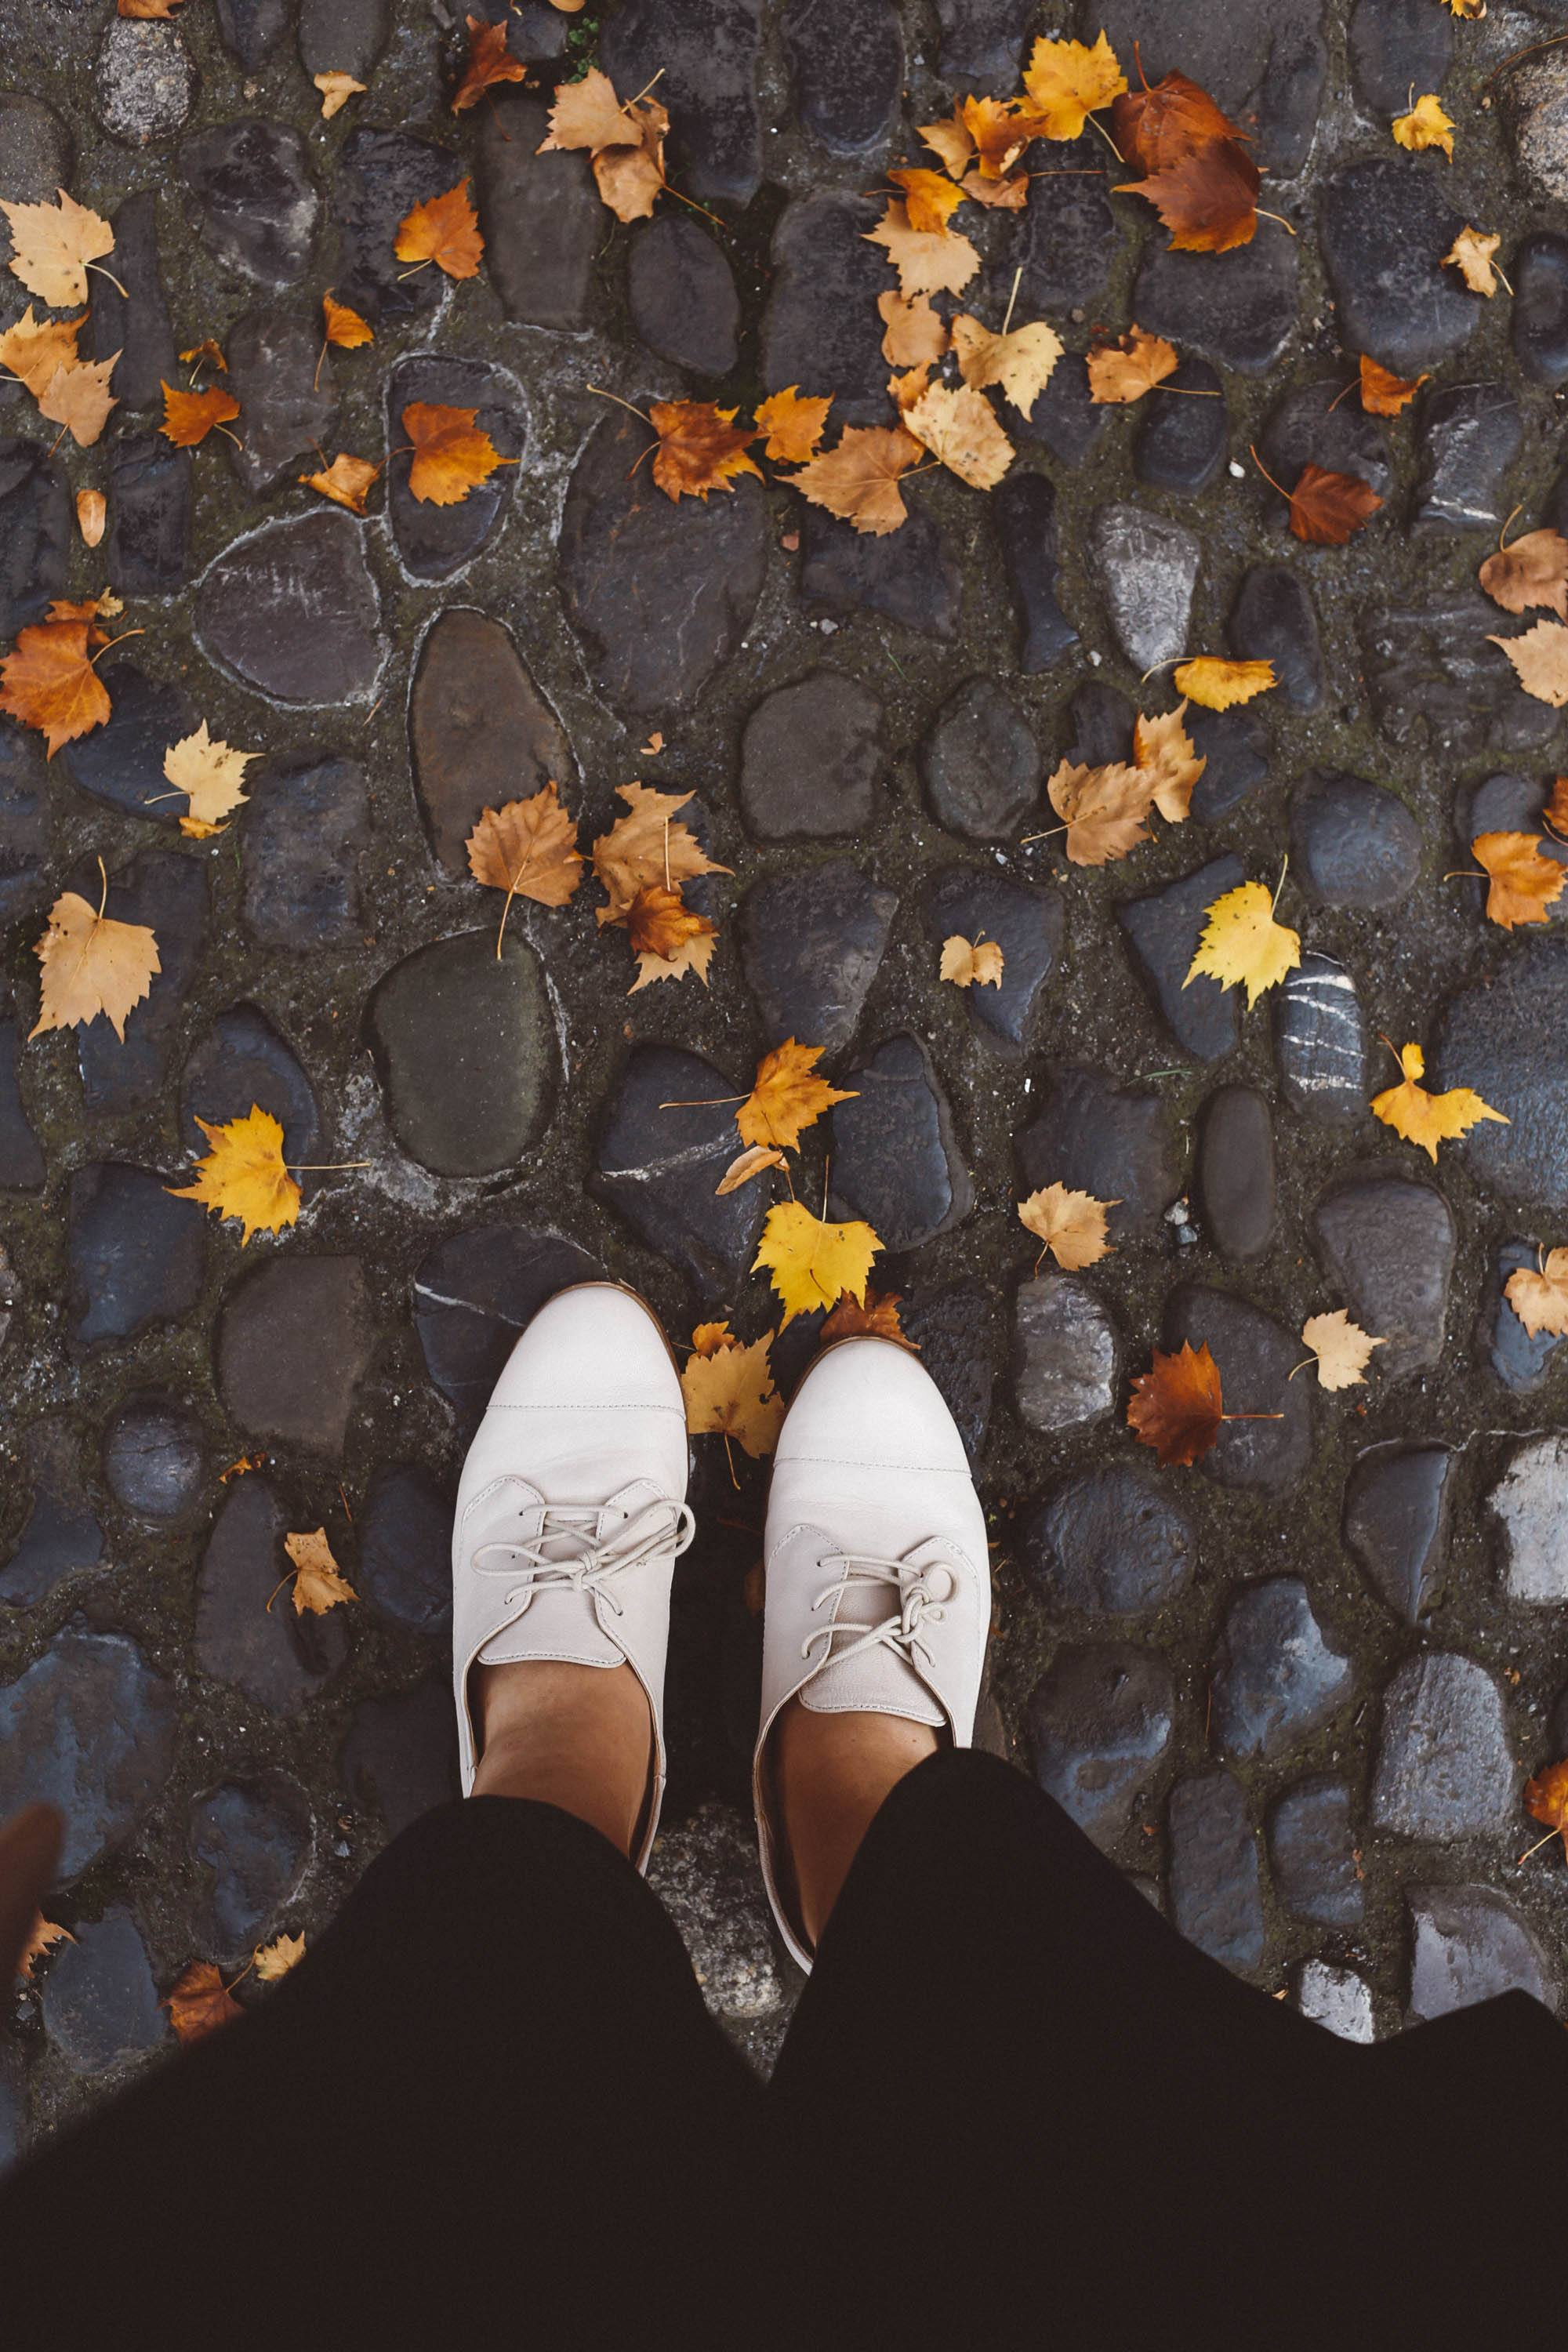 white shoes fall leaves